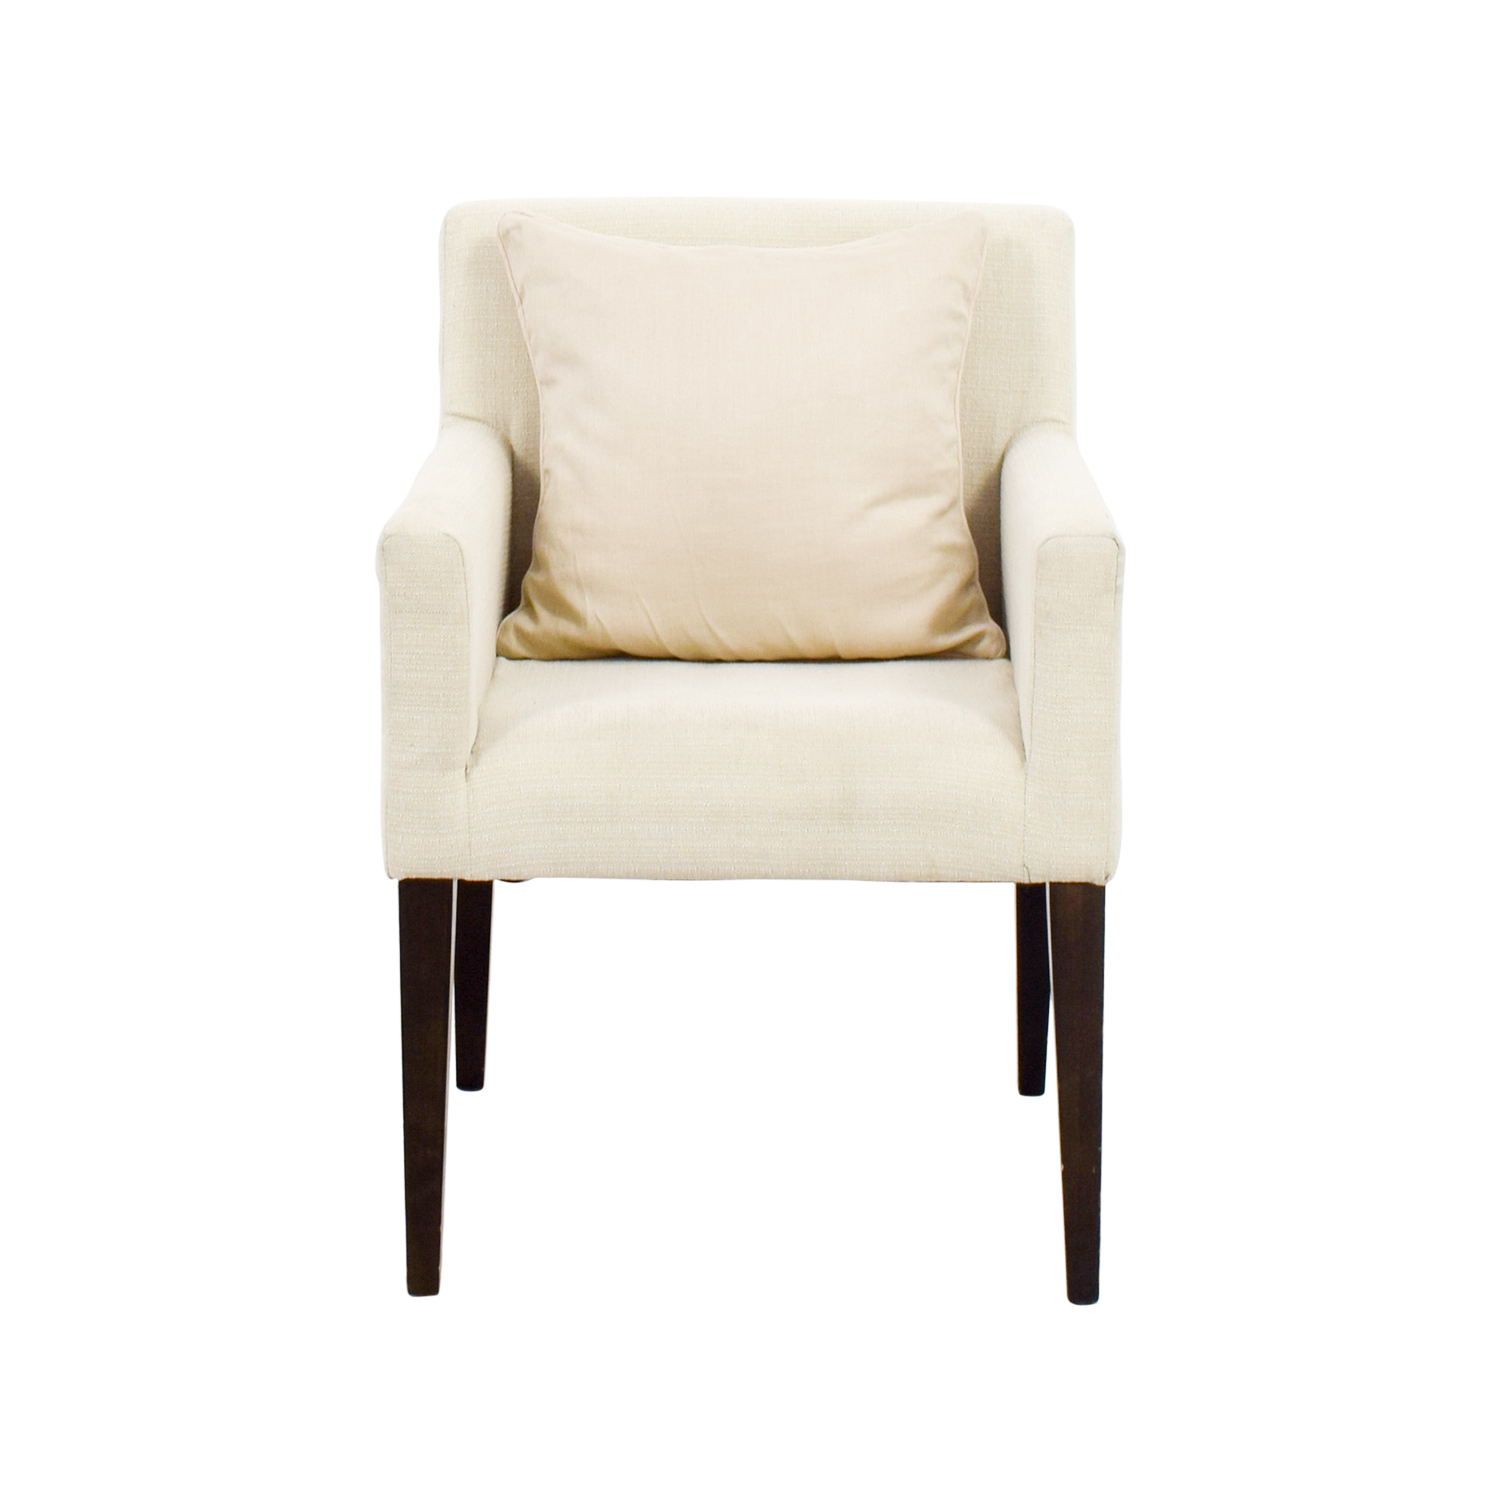 77% OFF - Pottery Barn Pottery Barn Dining Room Side Chair / Chairs